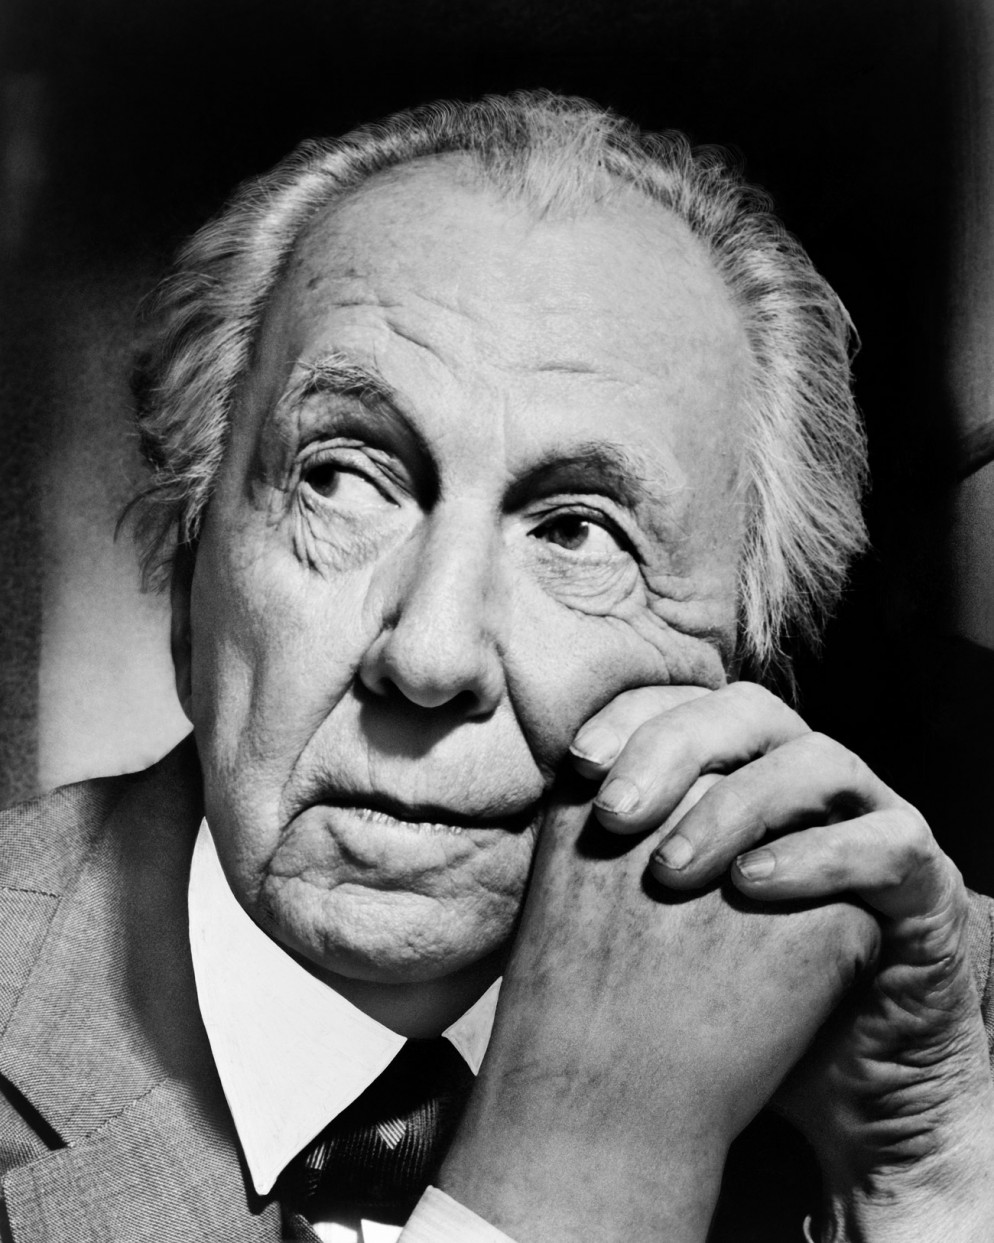 A-portrait-of-famed-architect-Frank-Lloyd-Wright,-New-York,-New-York,-1954.-(Photo-by-Al-Ravenna_Underwood-Archives_Getty-Images)